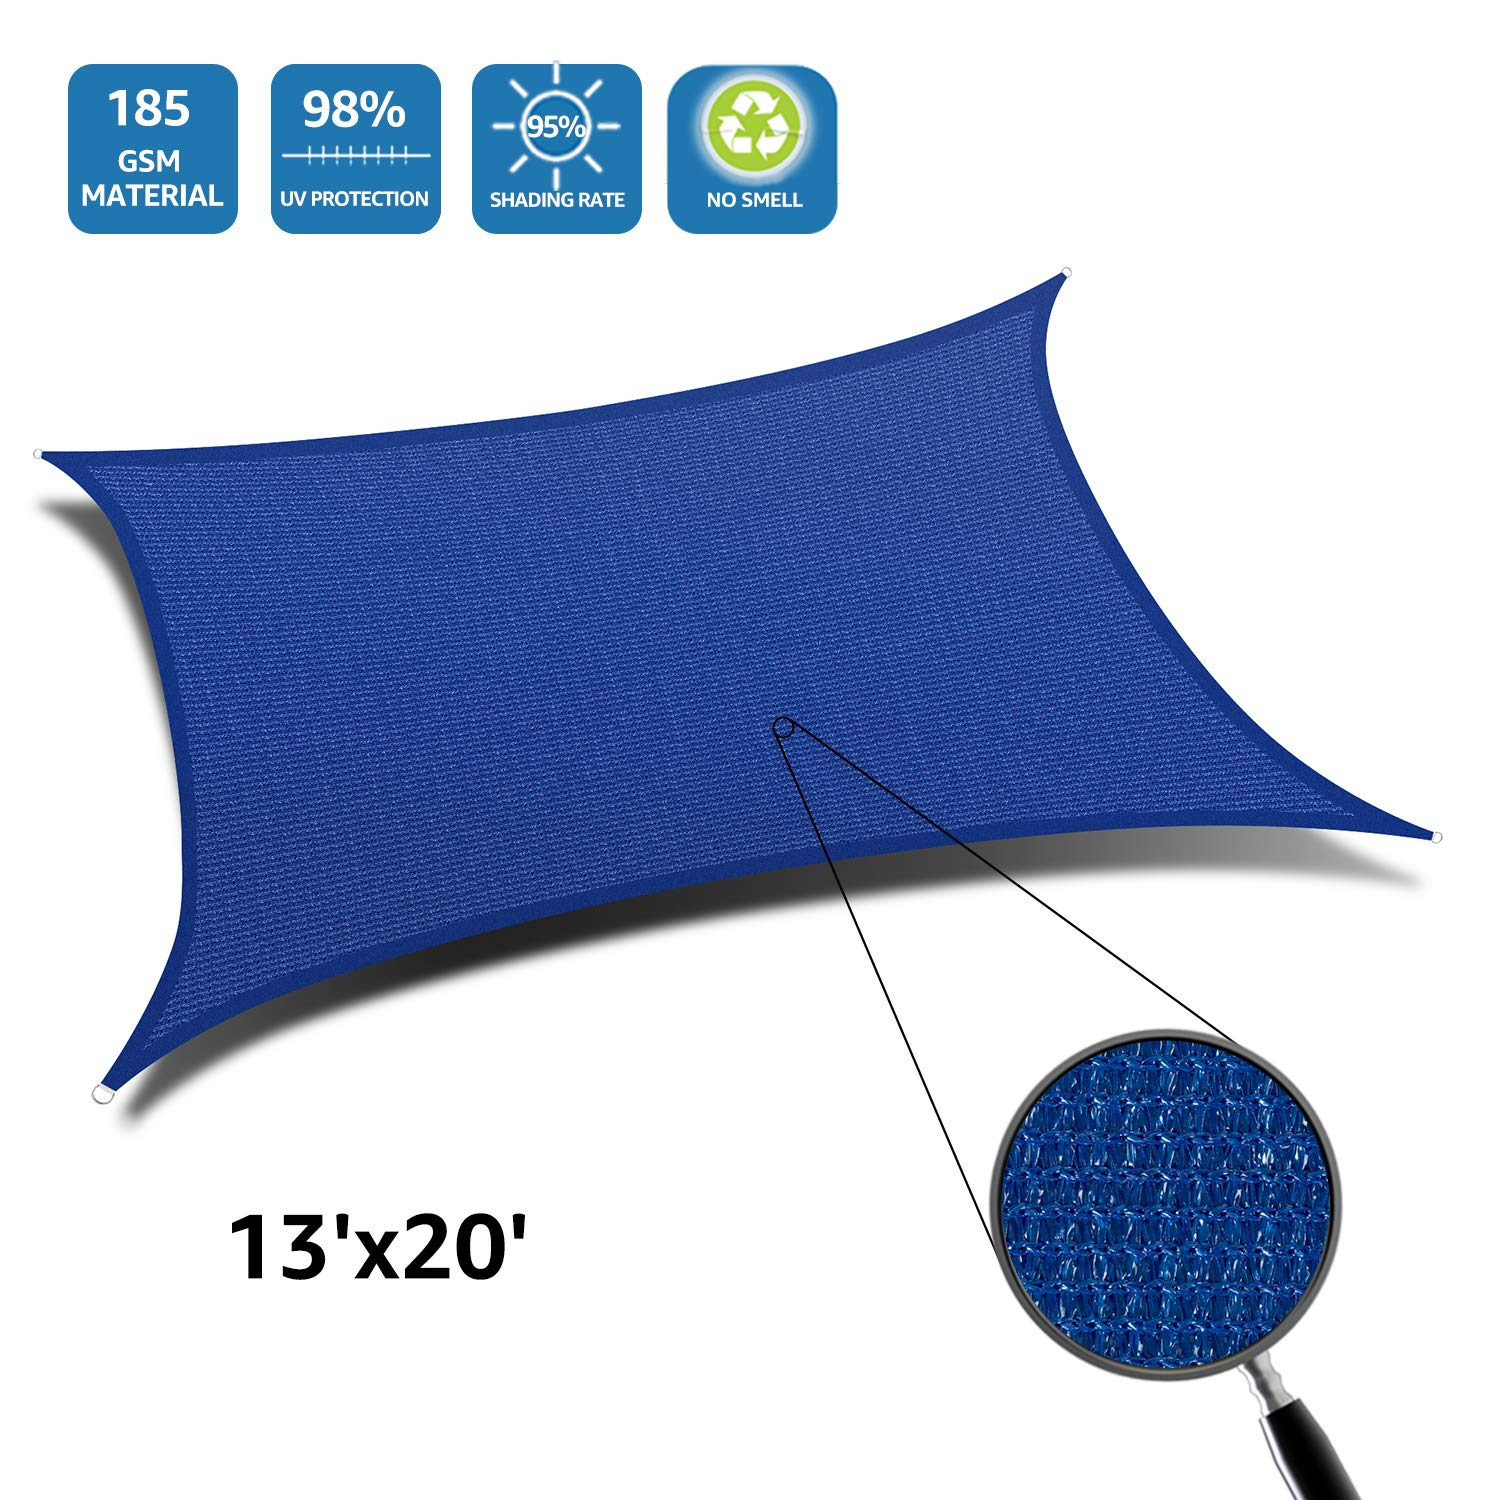 DOEWORKS Rectangle 13' X 20' Sun Shade Sail, UV Block for Outdoor Patio Garden Facility and Activities, Blue by DOEWORKS